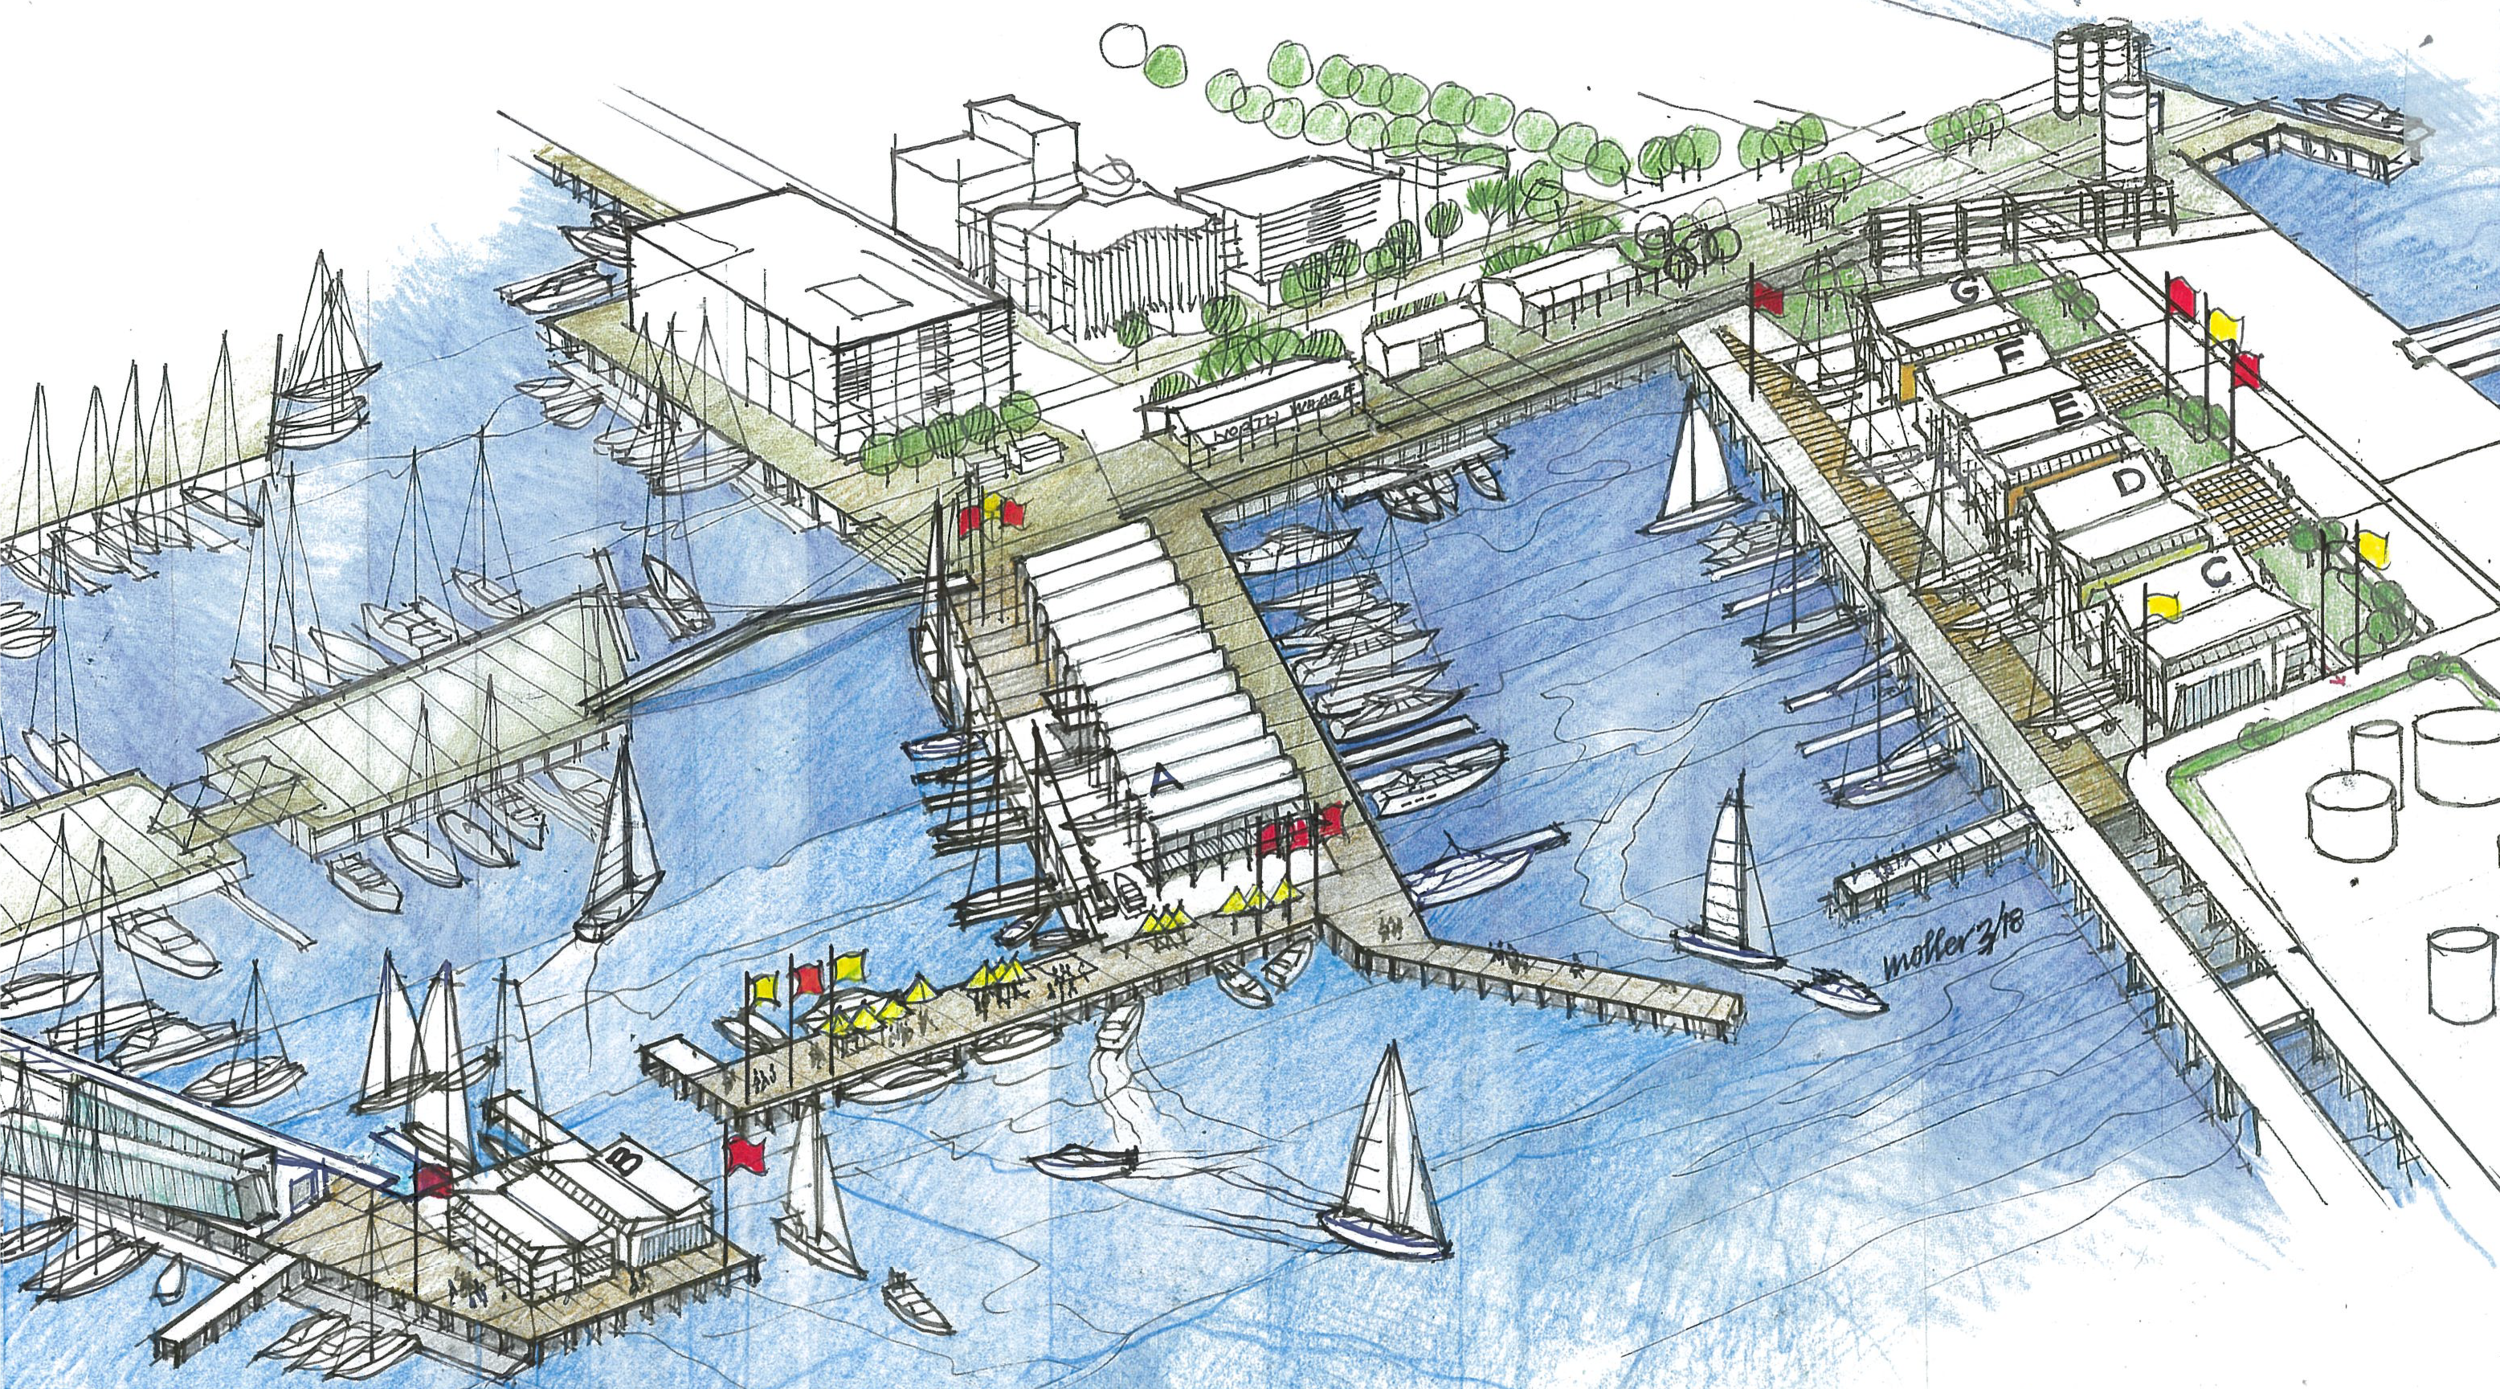 Artist impression of America's Cup Village and associated infrastructure by Moller Architects